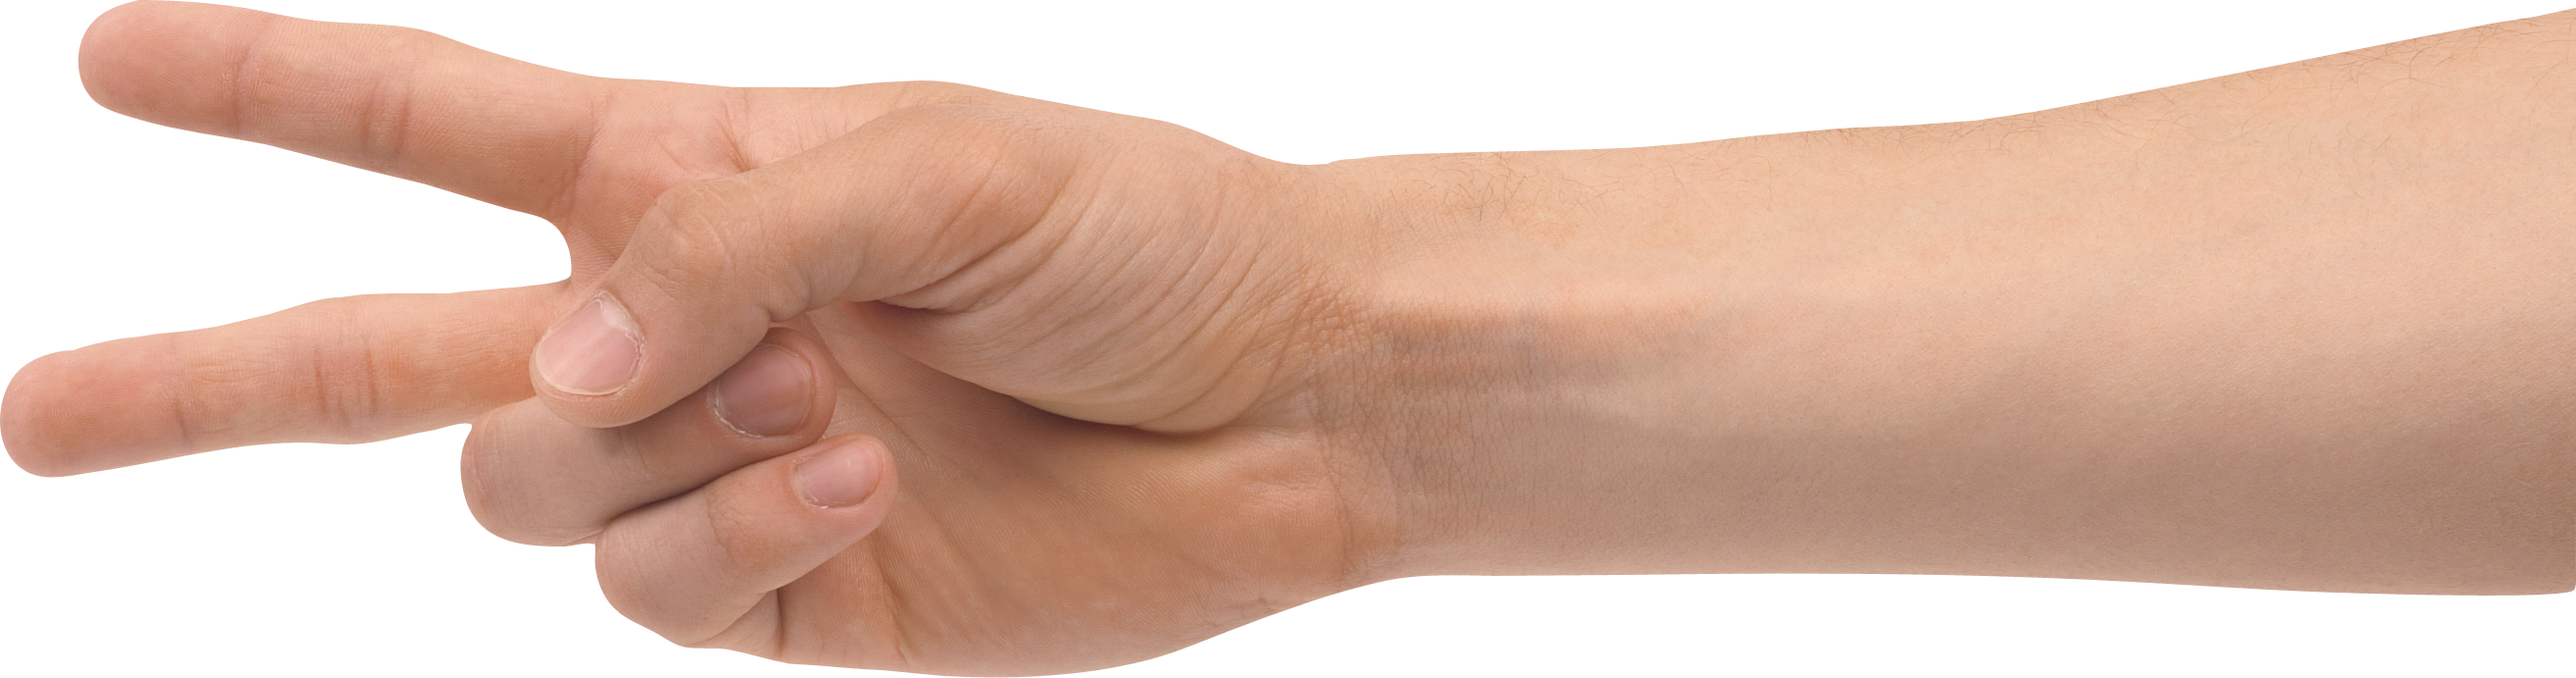 uploads hands hands PNG858 4